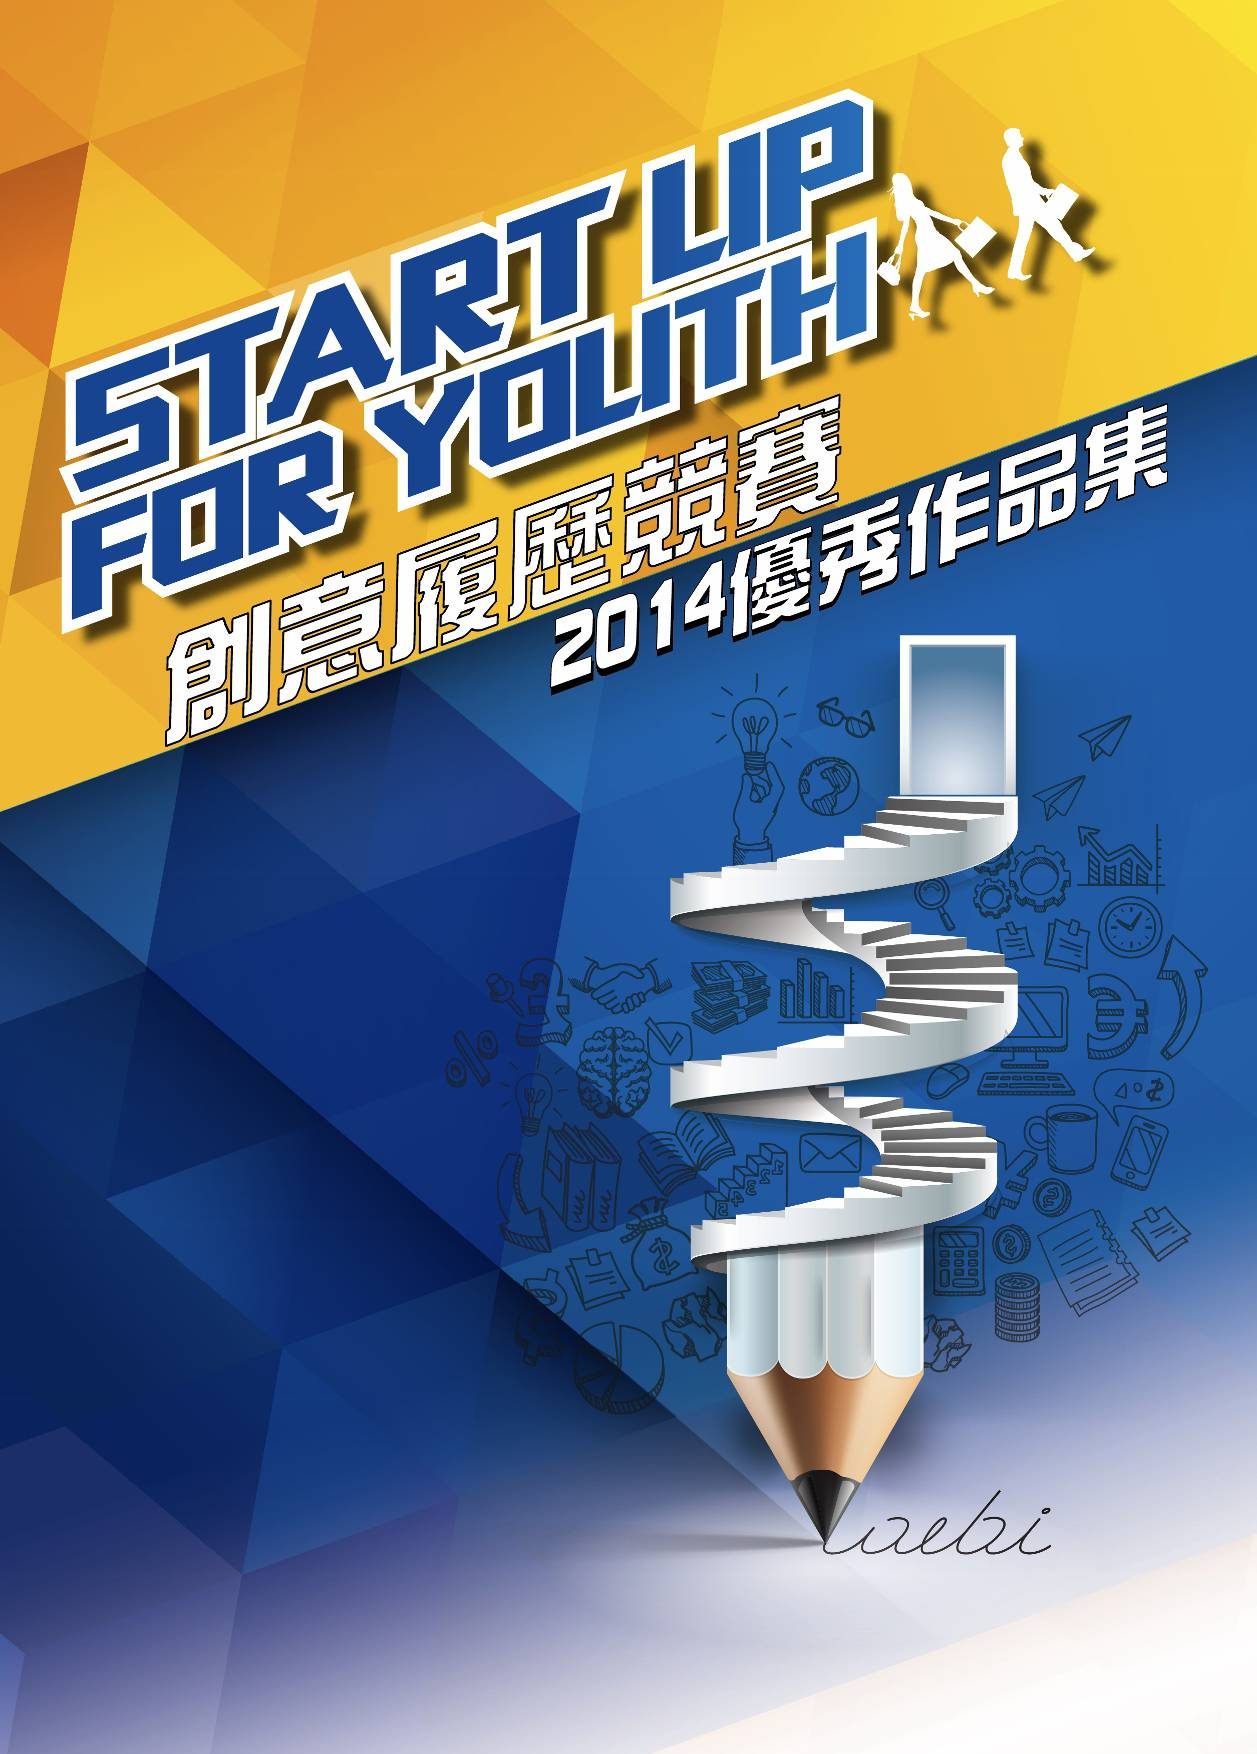 Startup For Youth創意履歷競賽優秀作品集